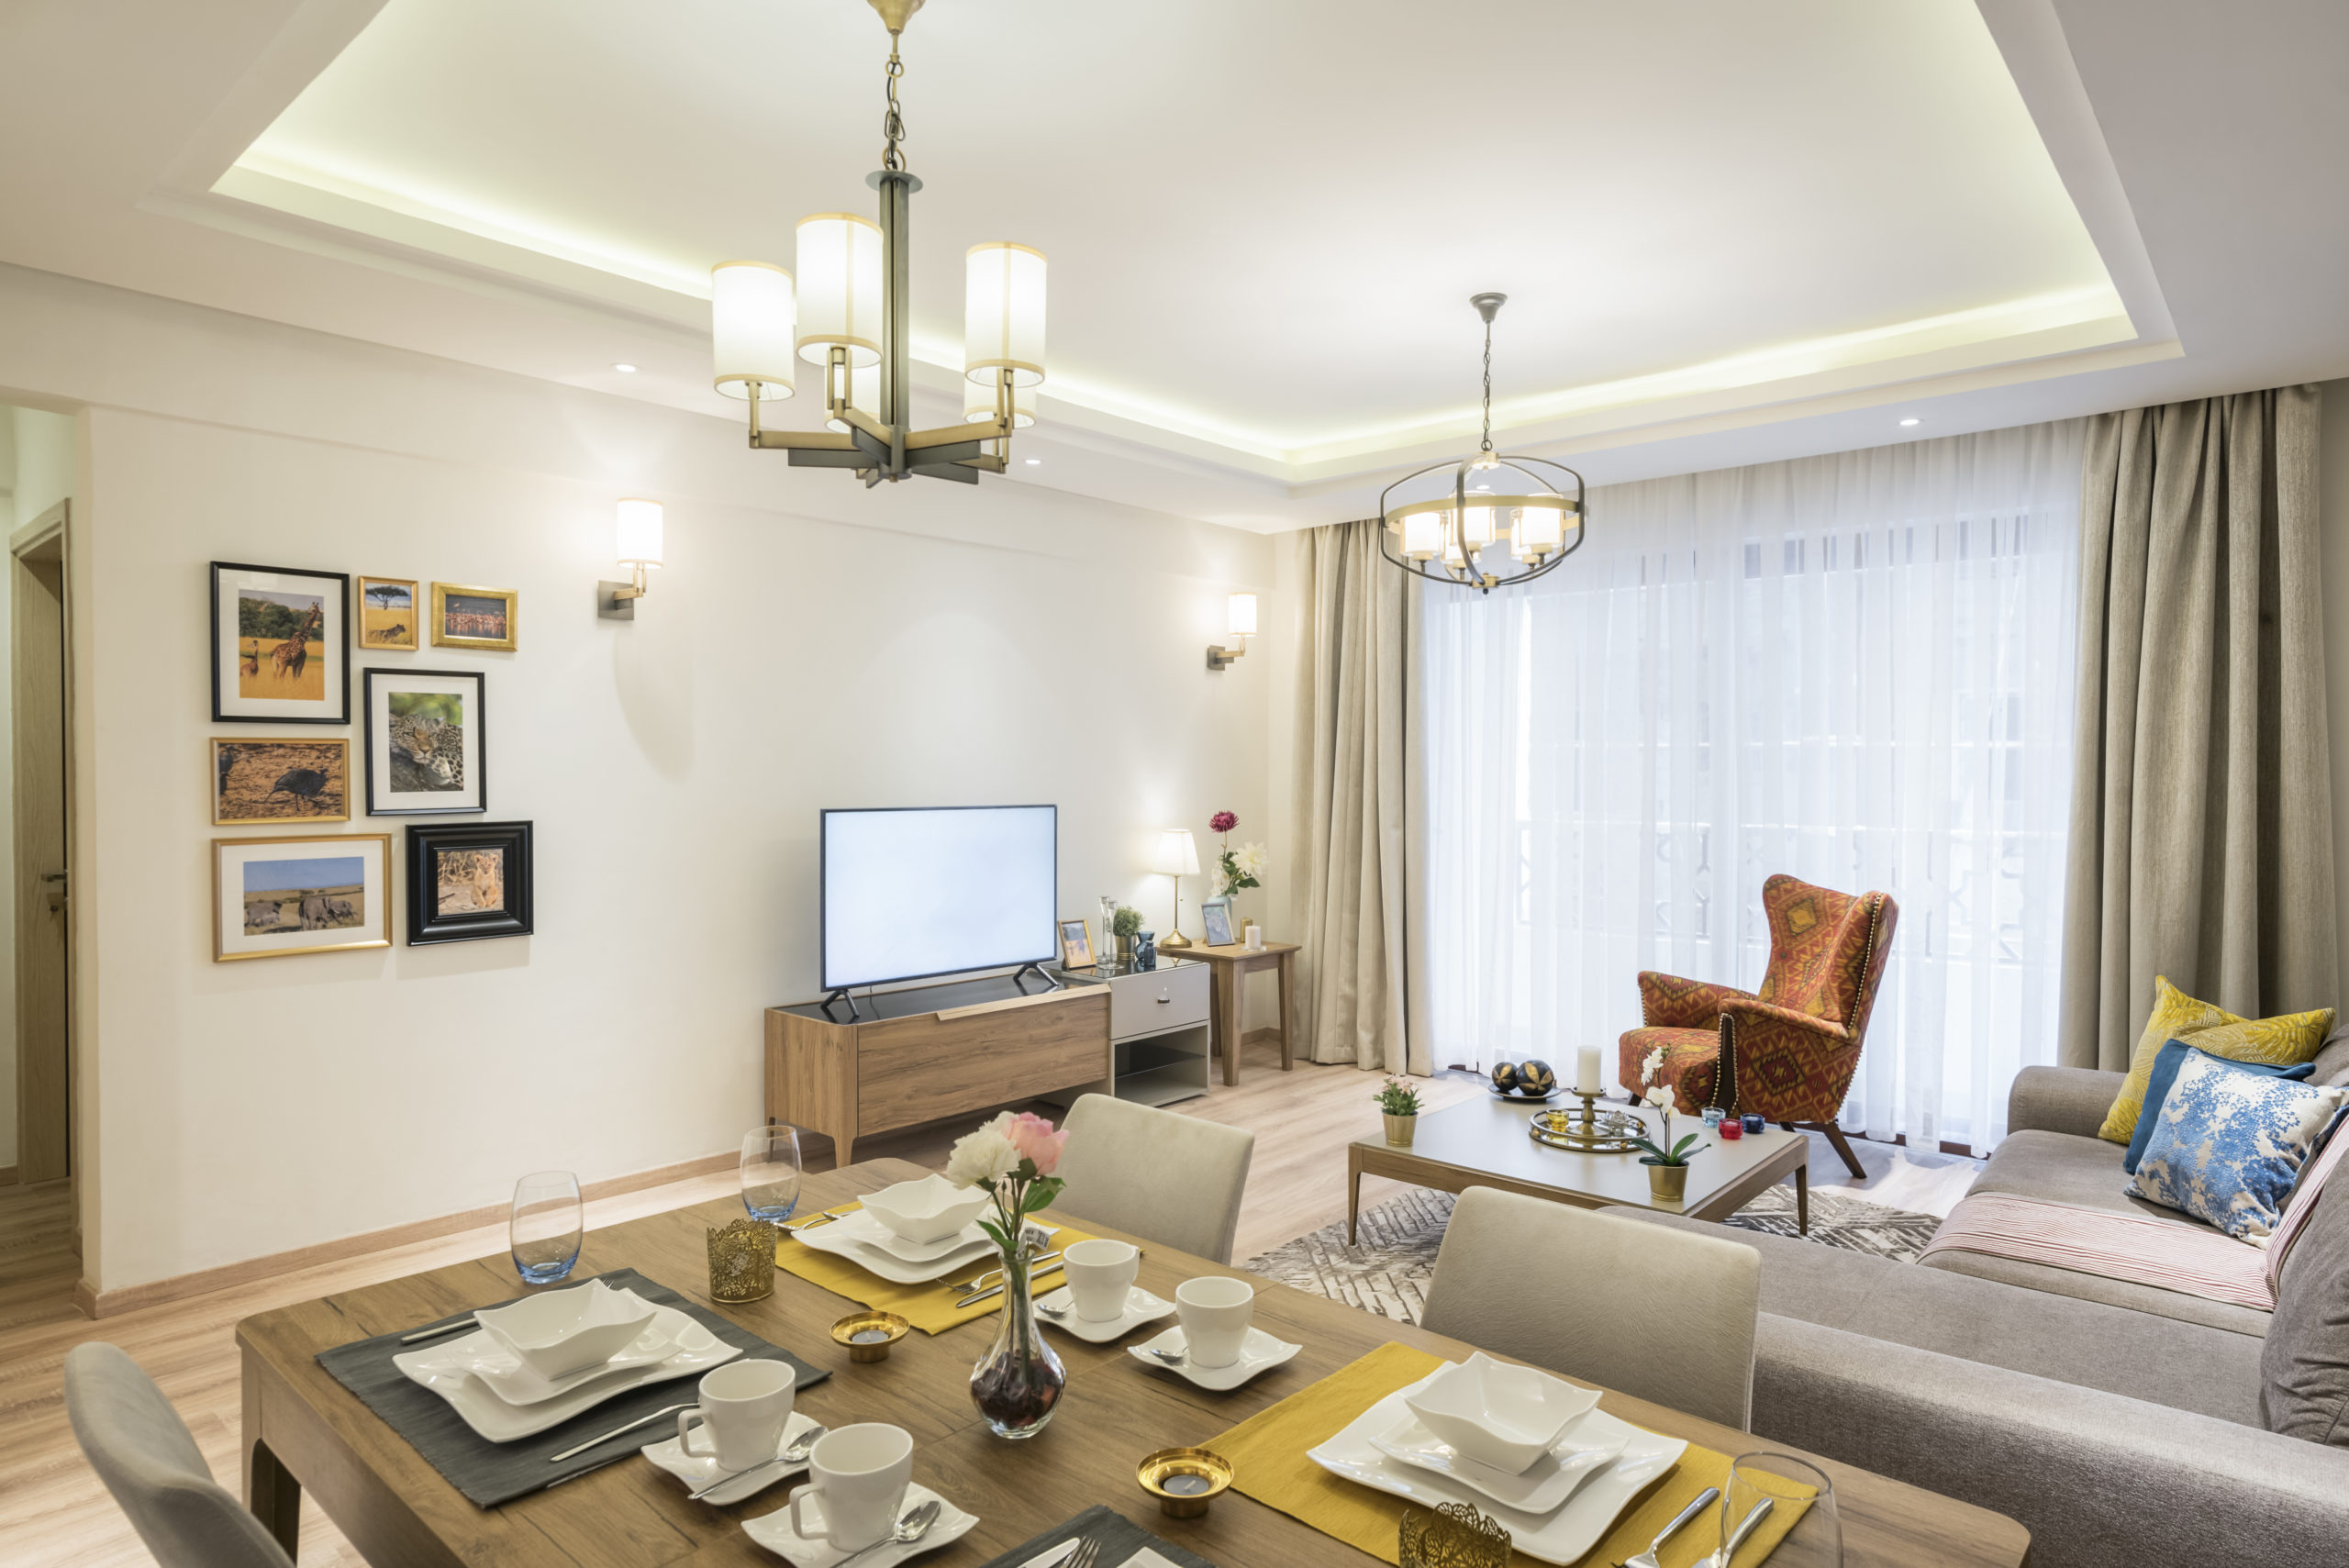 Moon Valley Apartments – Brand New with Luxurious Amenities